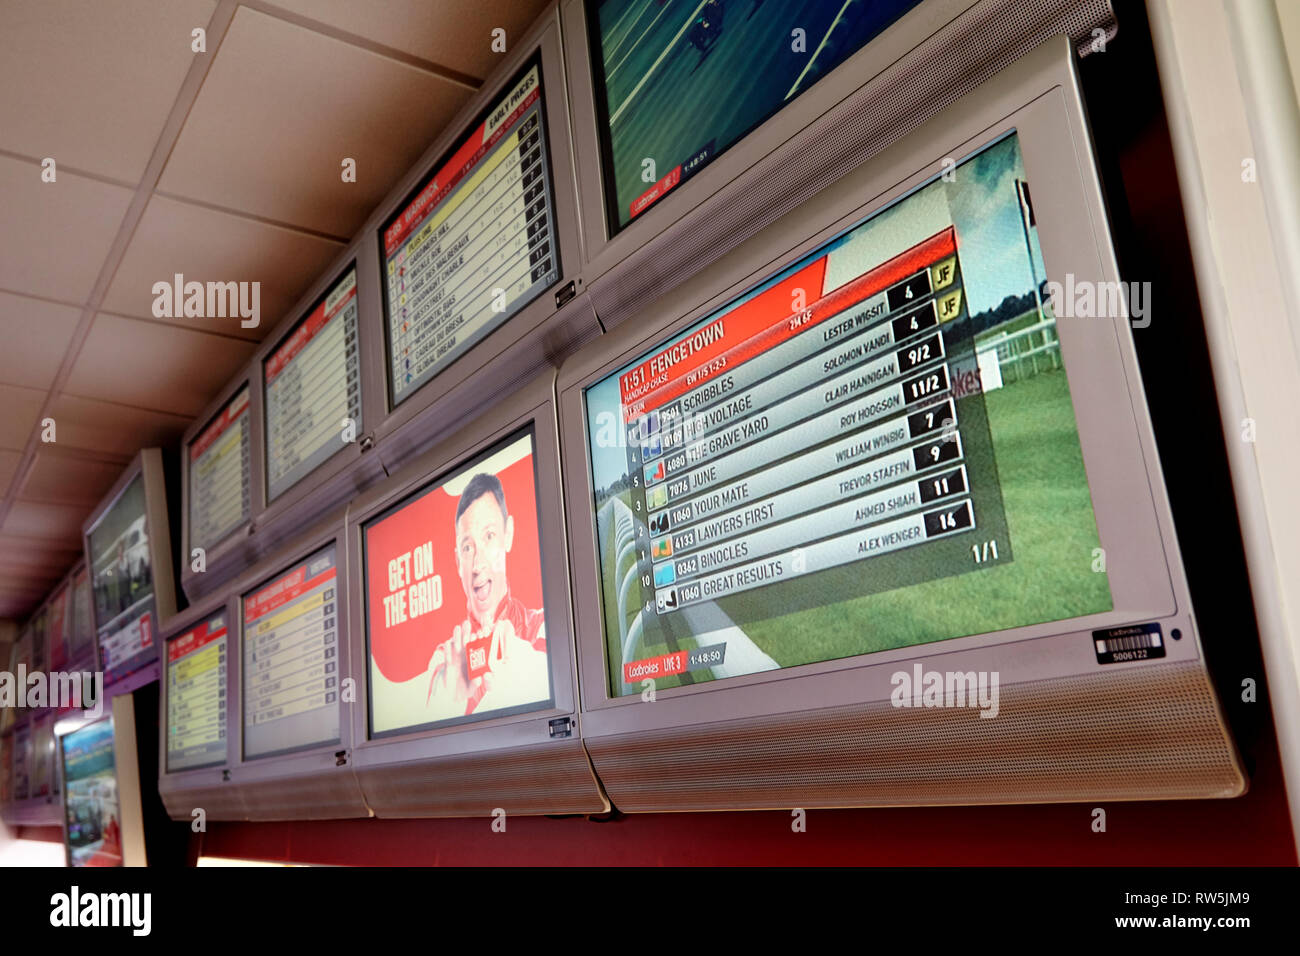 race details display screens inside a betting shop - Stock Image